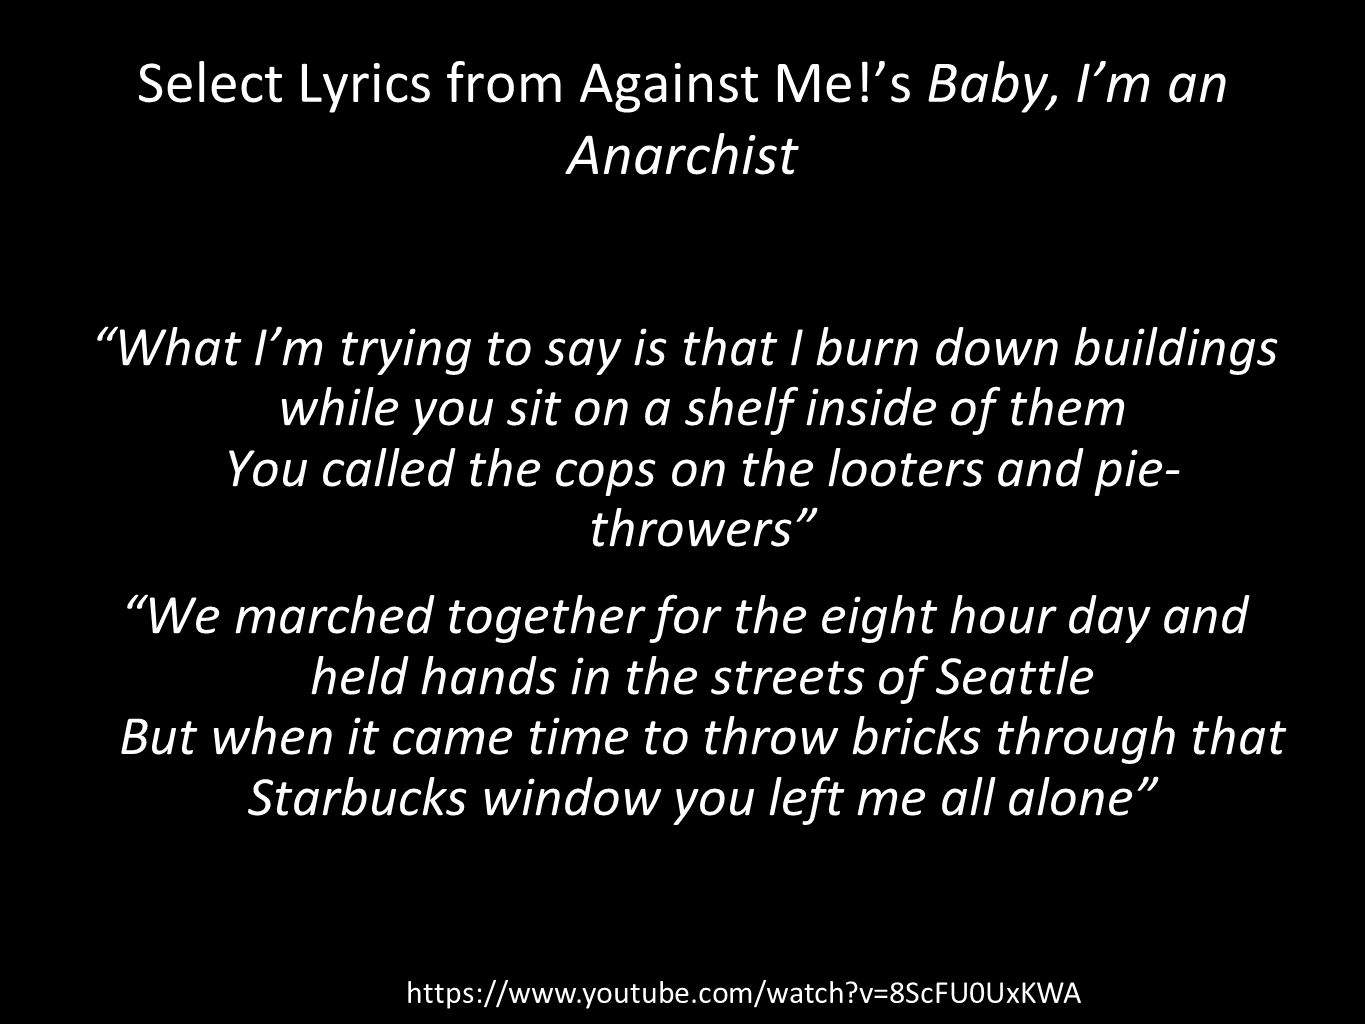 "Select Lyrics from Against Me!'s Baby, I'm an Anarchist ""What I'm trying to say is that I burn down buildings while you sit on a shelf inside of them"